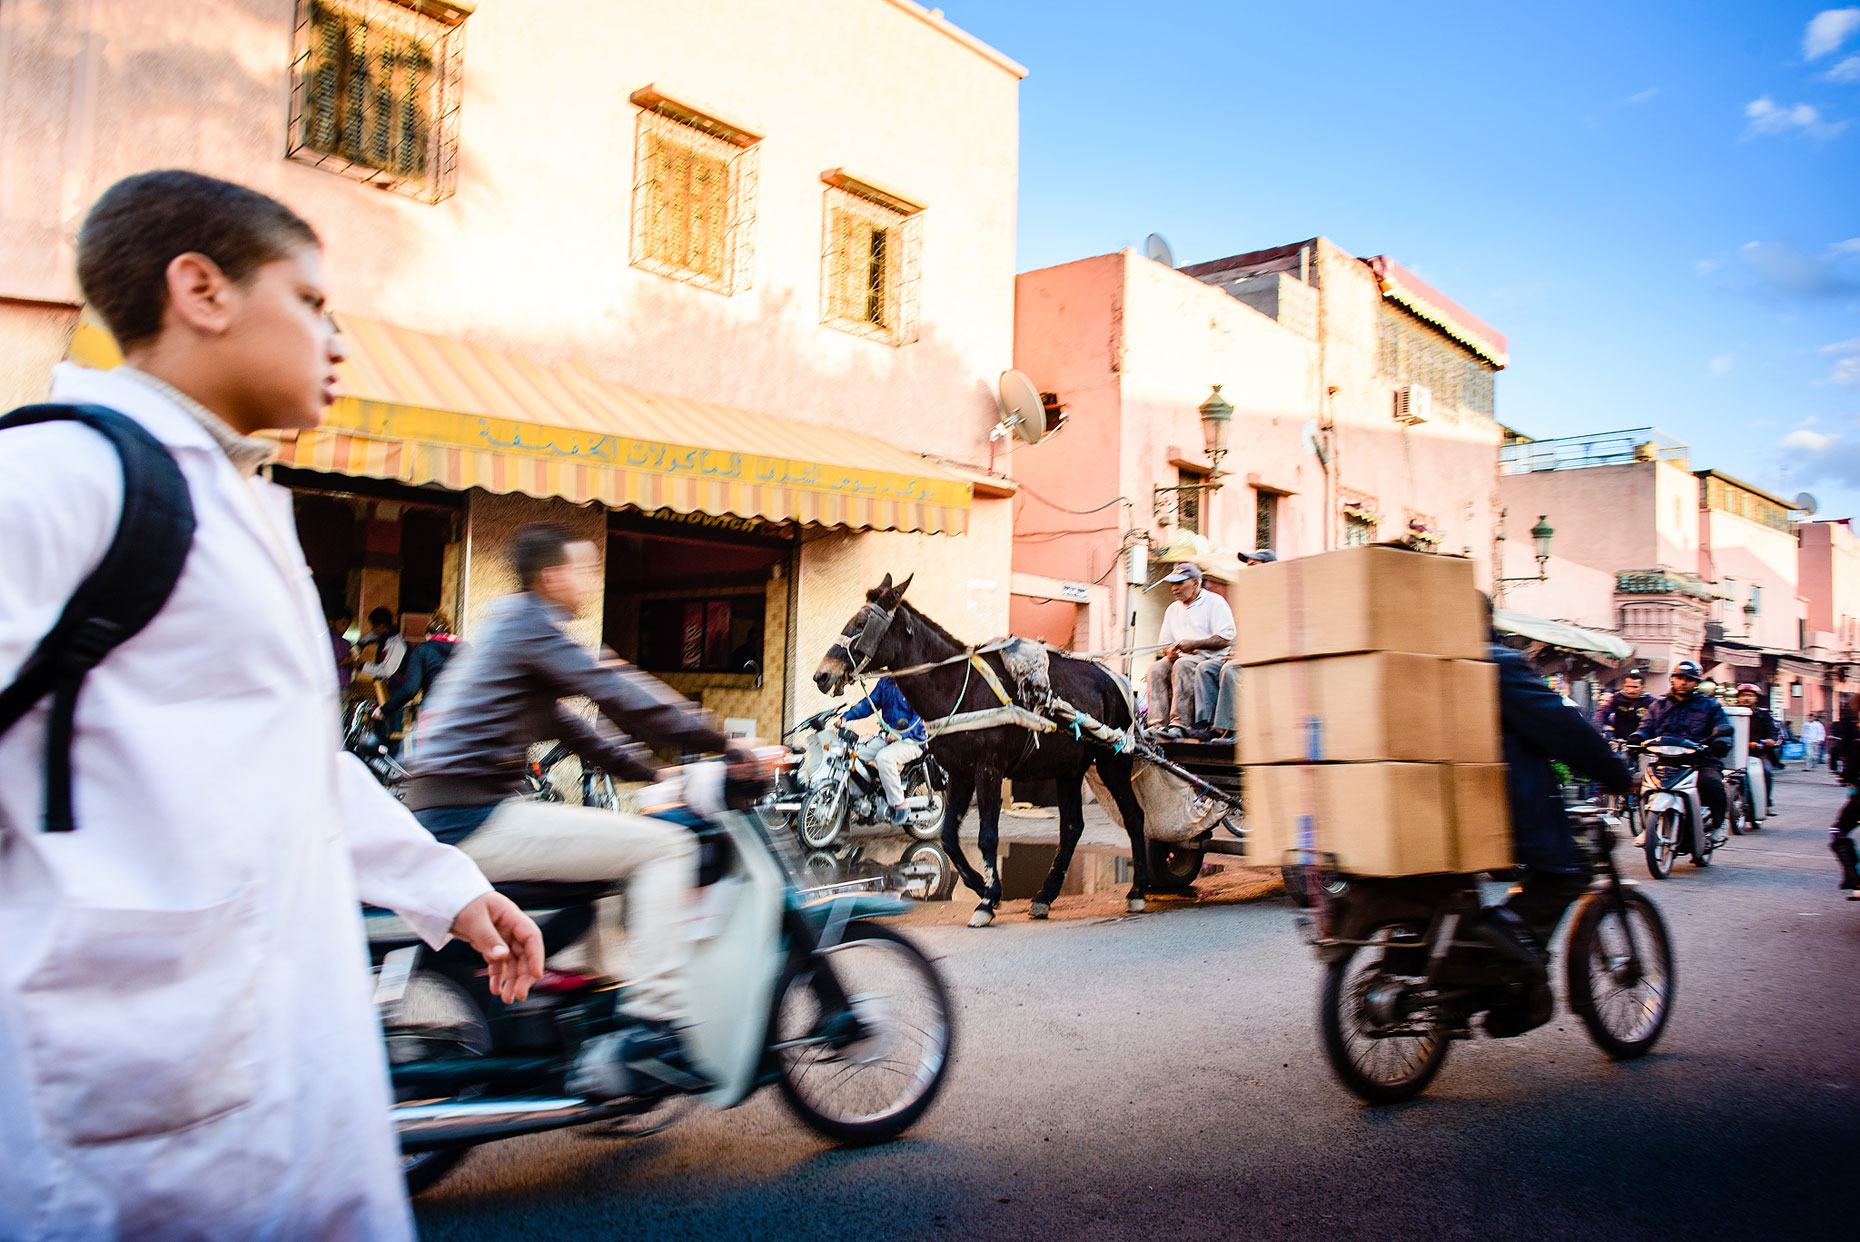 Marrakech street  scene in Morocco with horse and cart.